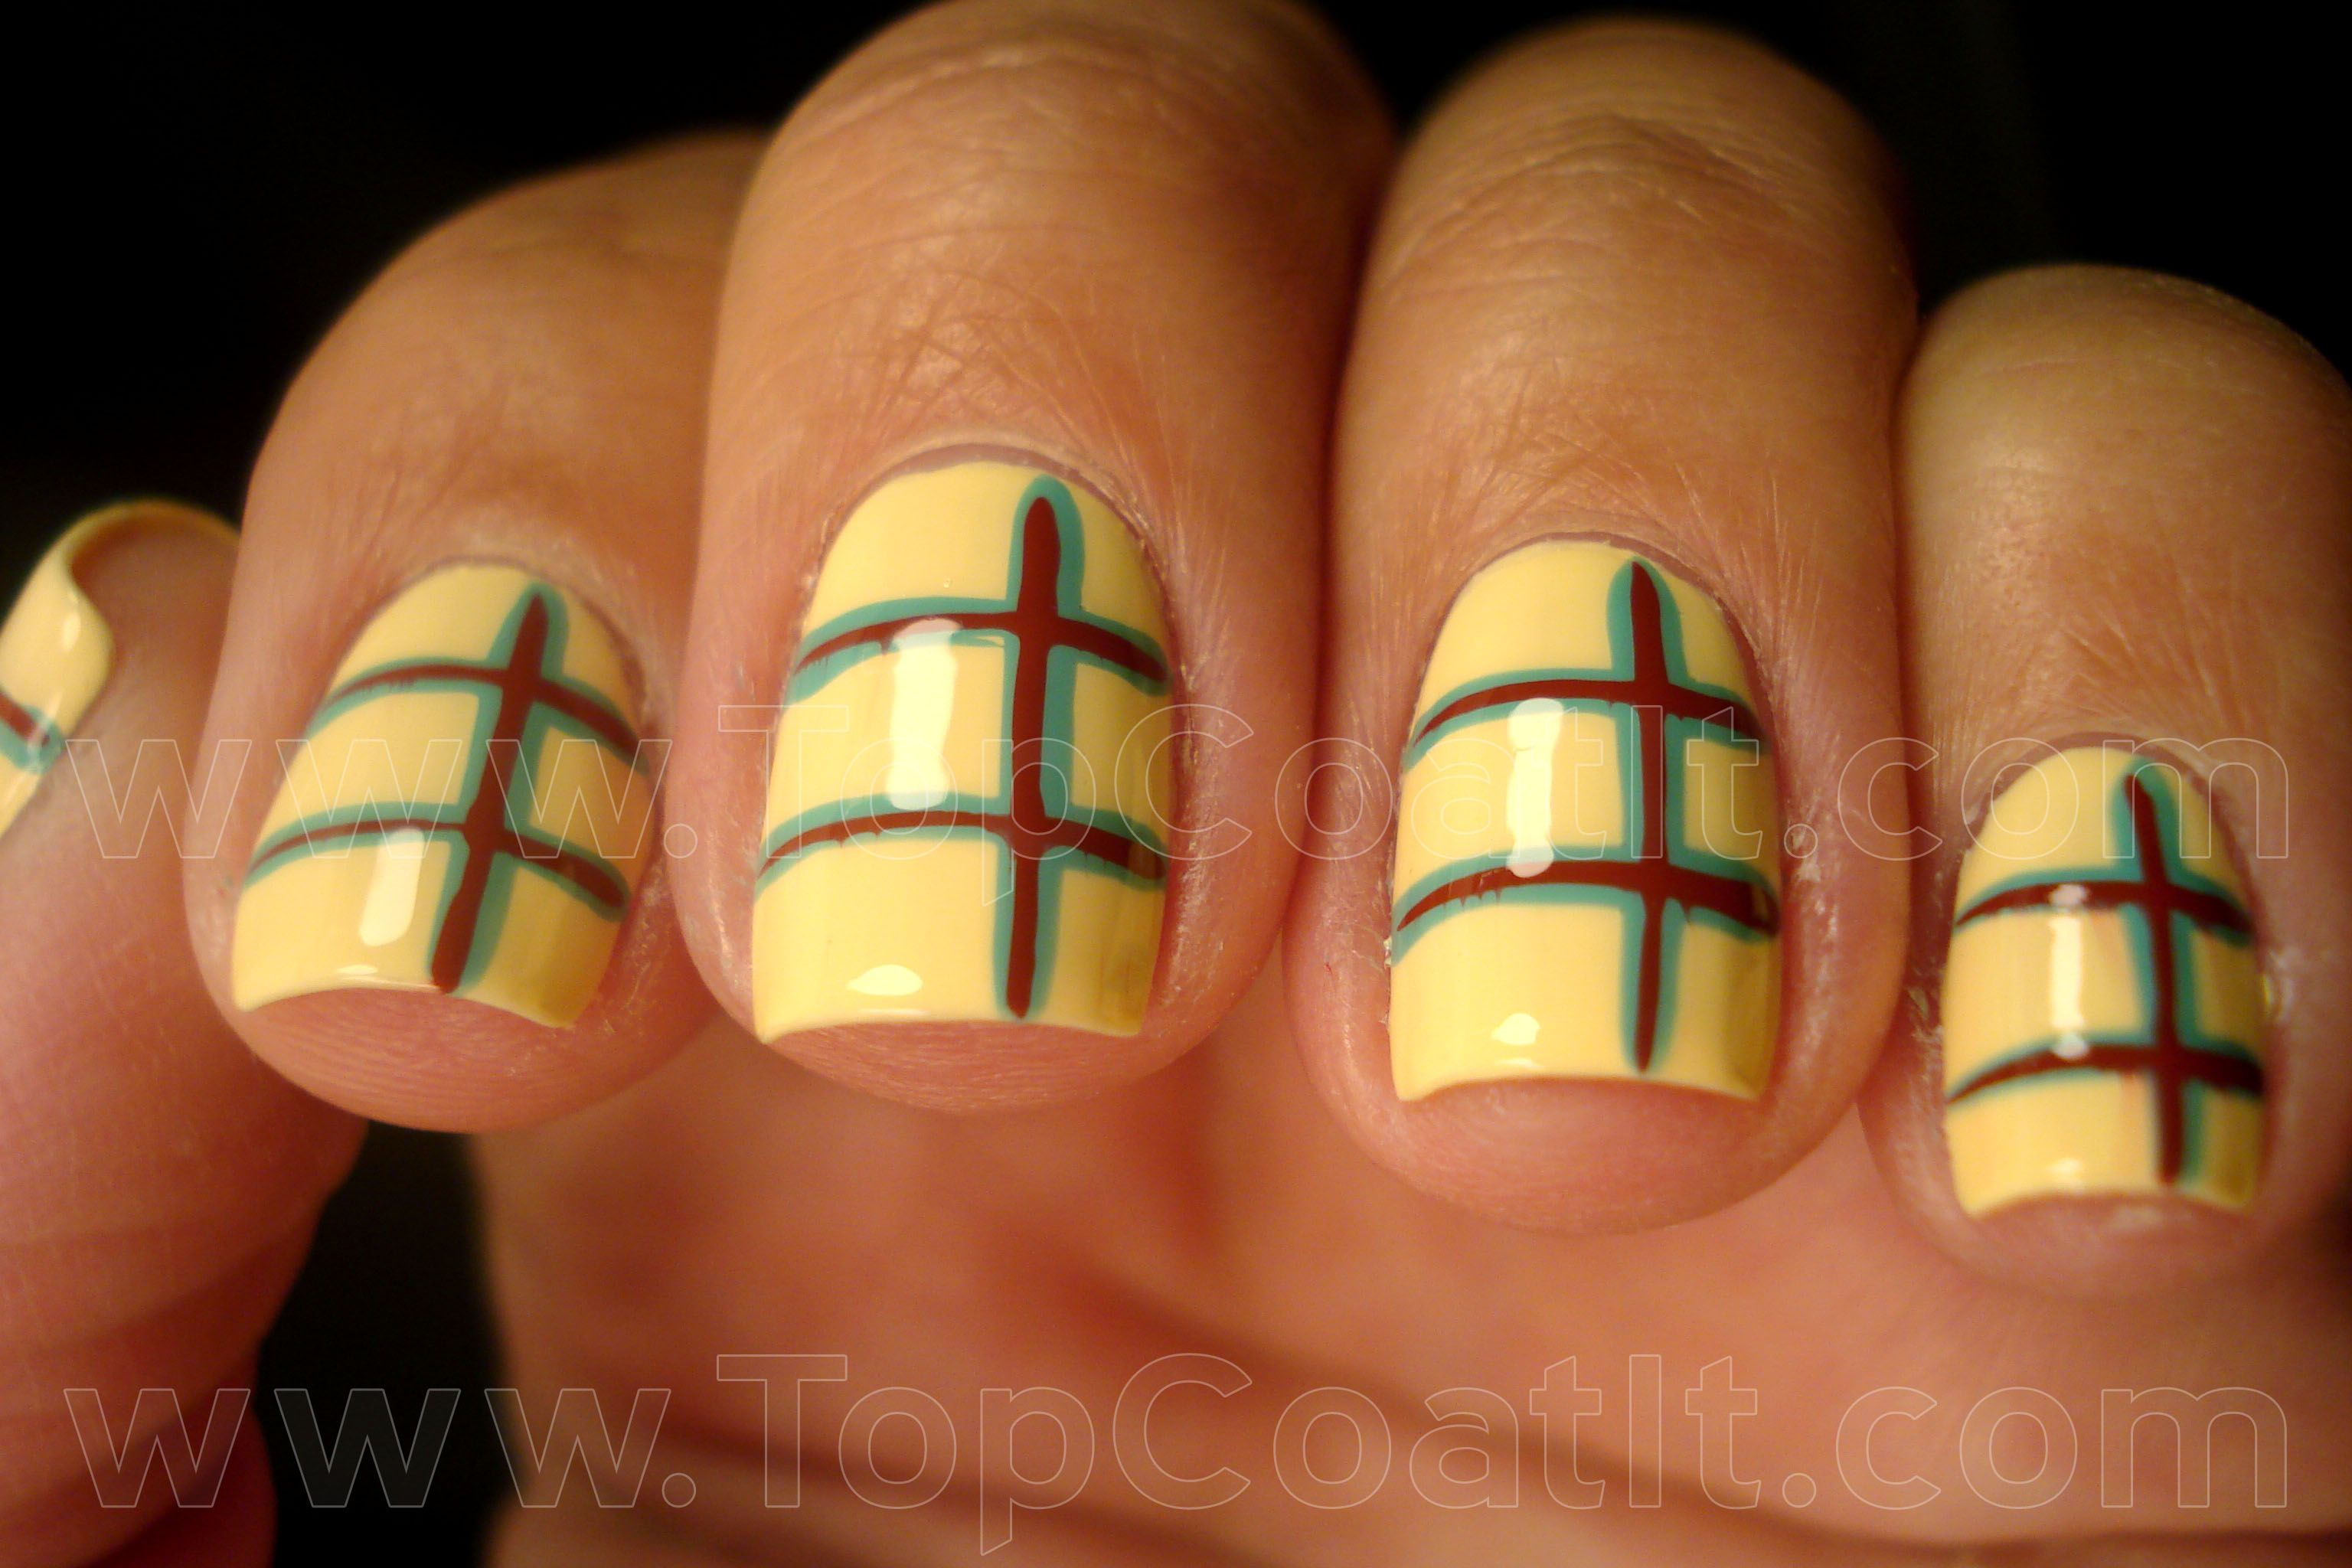 Lines (not quite plaid) of turquoise & dark red over yellow nail art ...